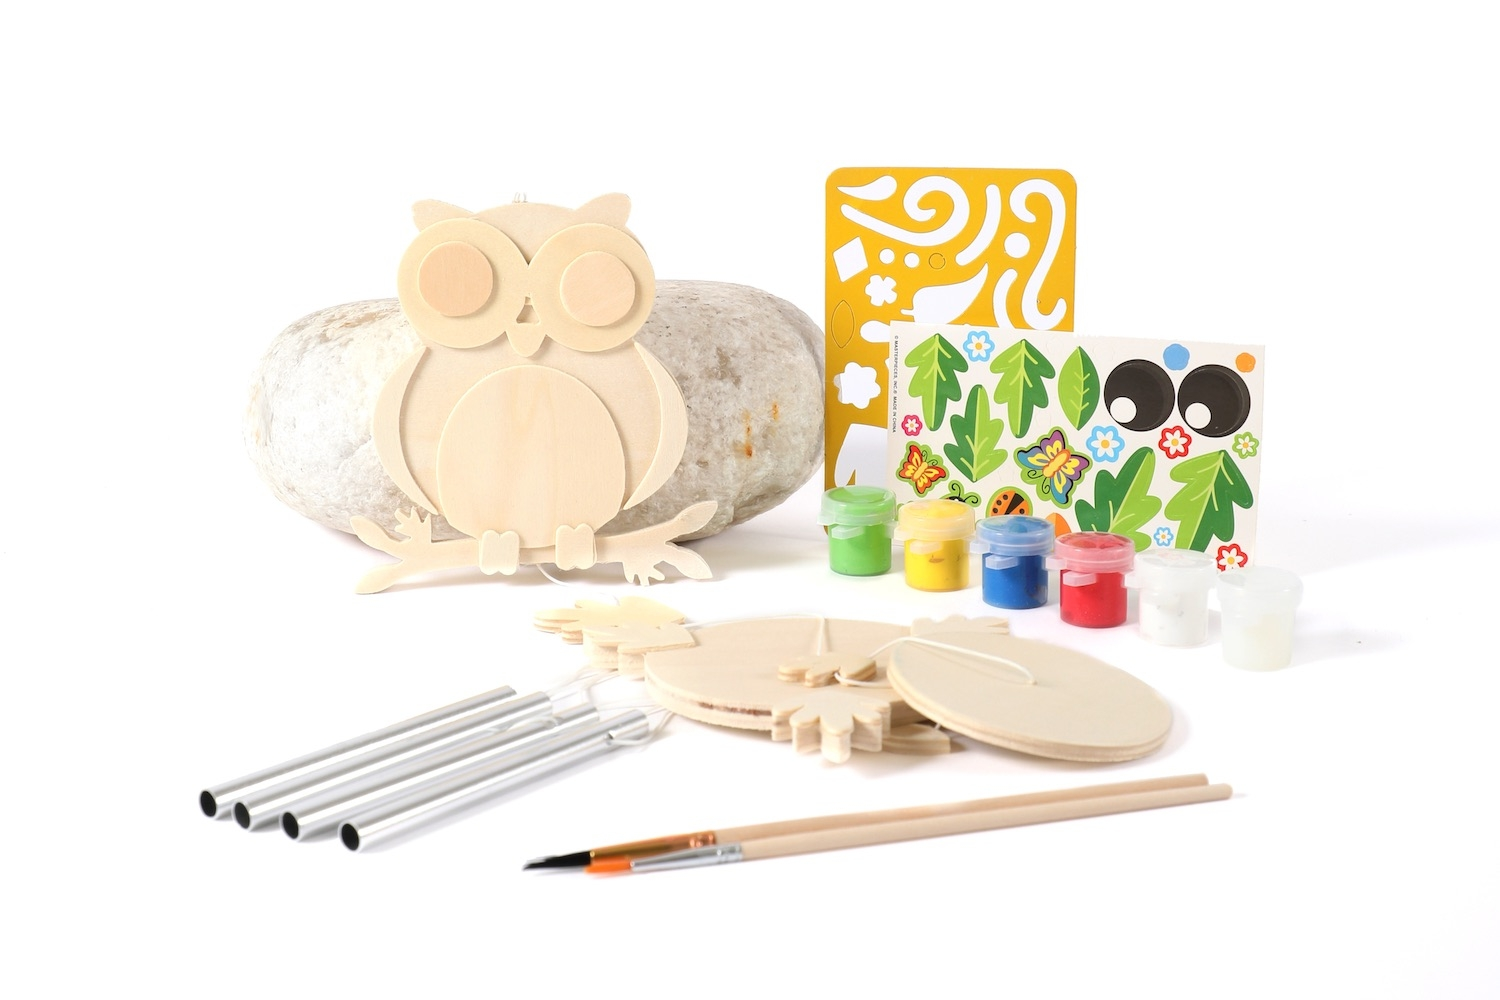 Alternate Paint Your Own Owl Wind Chime Kit image 0